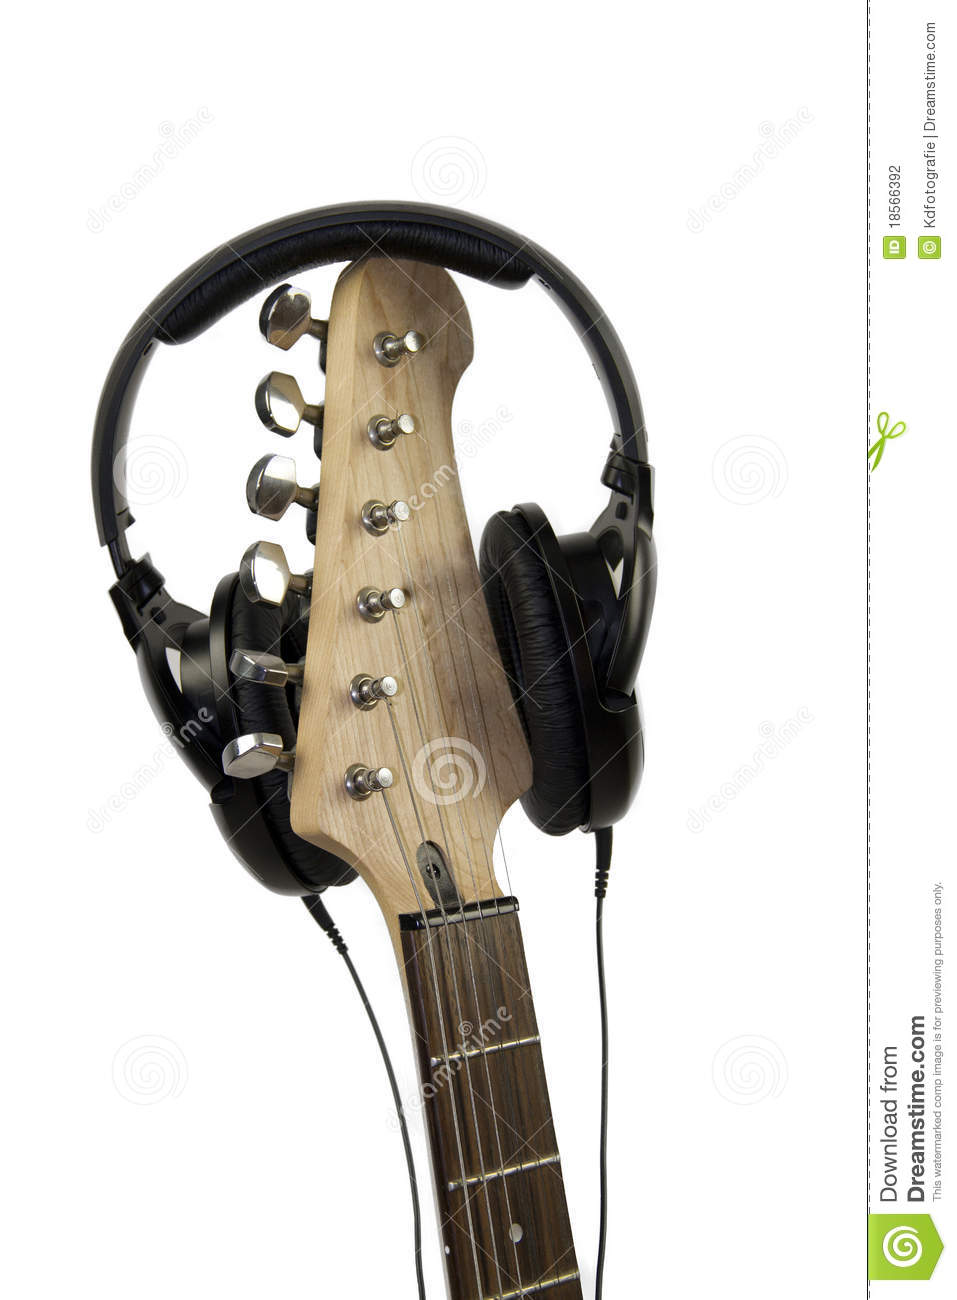 electric guitar with headphones stock photo image of stereo strings 18566392. Black Bedroom Furniture Sets. Home Design Ideas